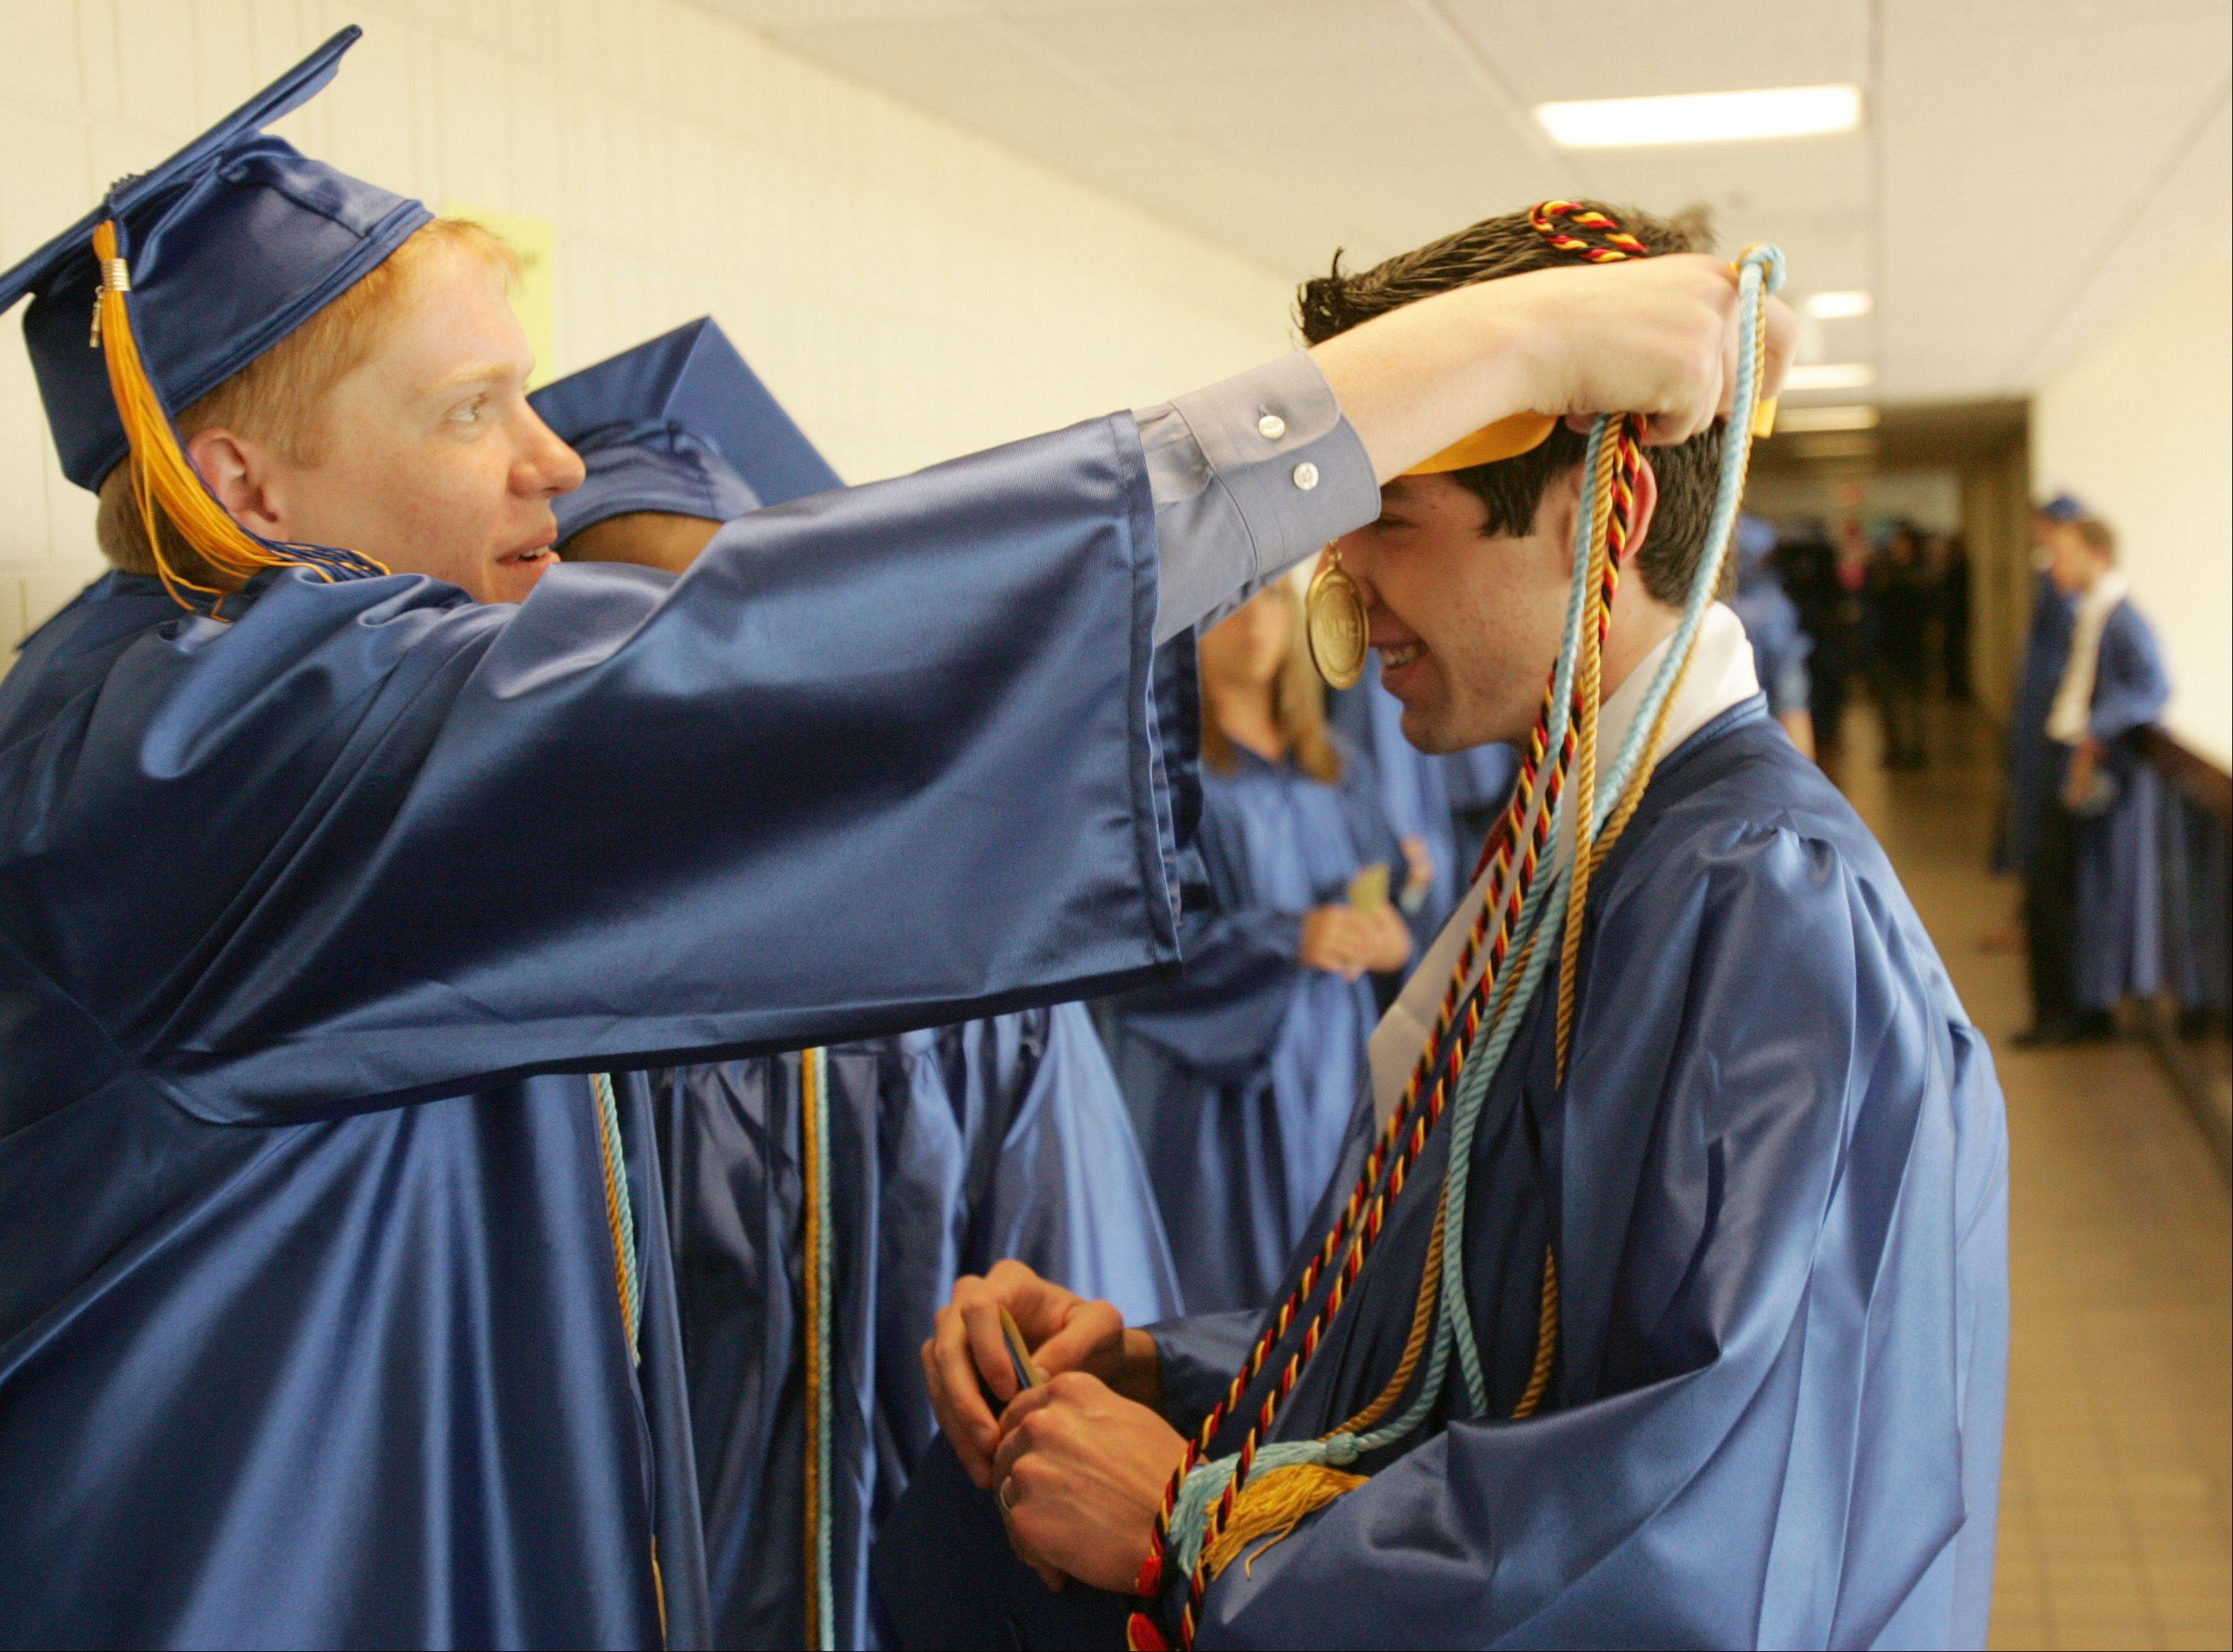 Kevin Salat, left, helps Cody Schulz, right, before the 2012 Wheaton North High School graduation, held at College of DuPage in Glen Ellyn. There were 507 Wheaton North graduates.